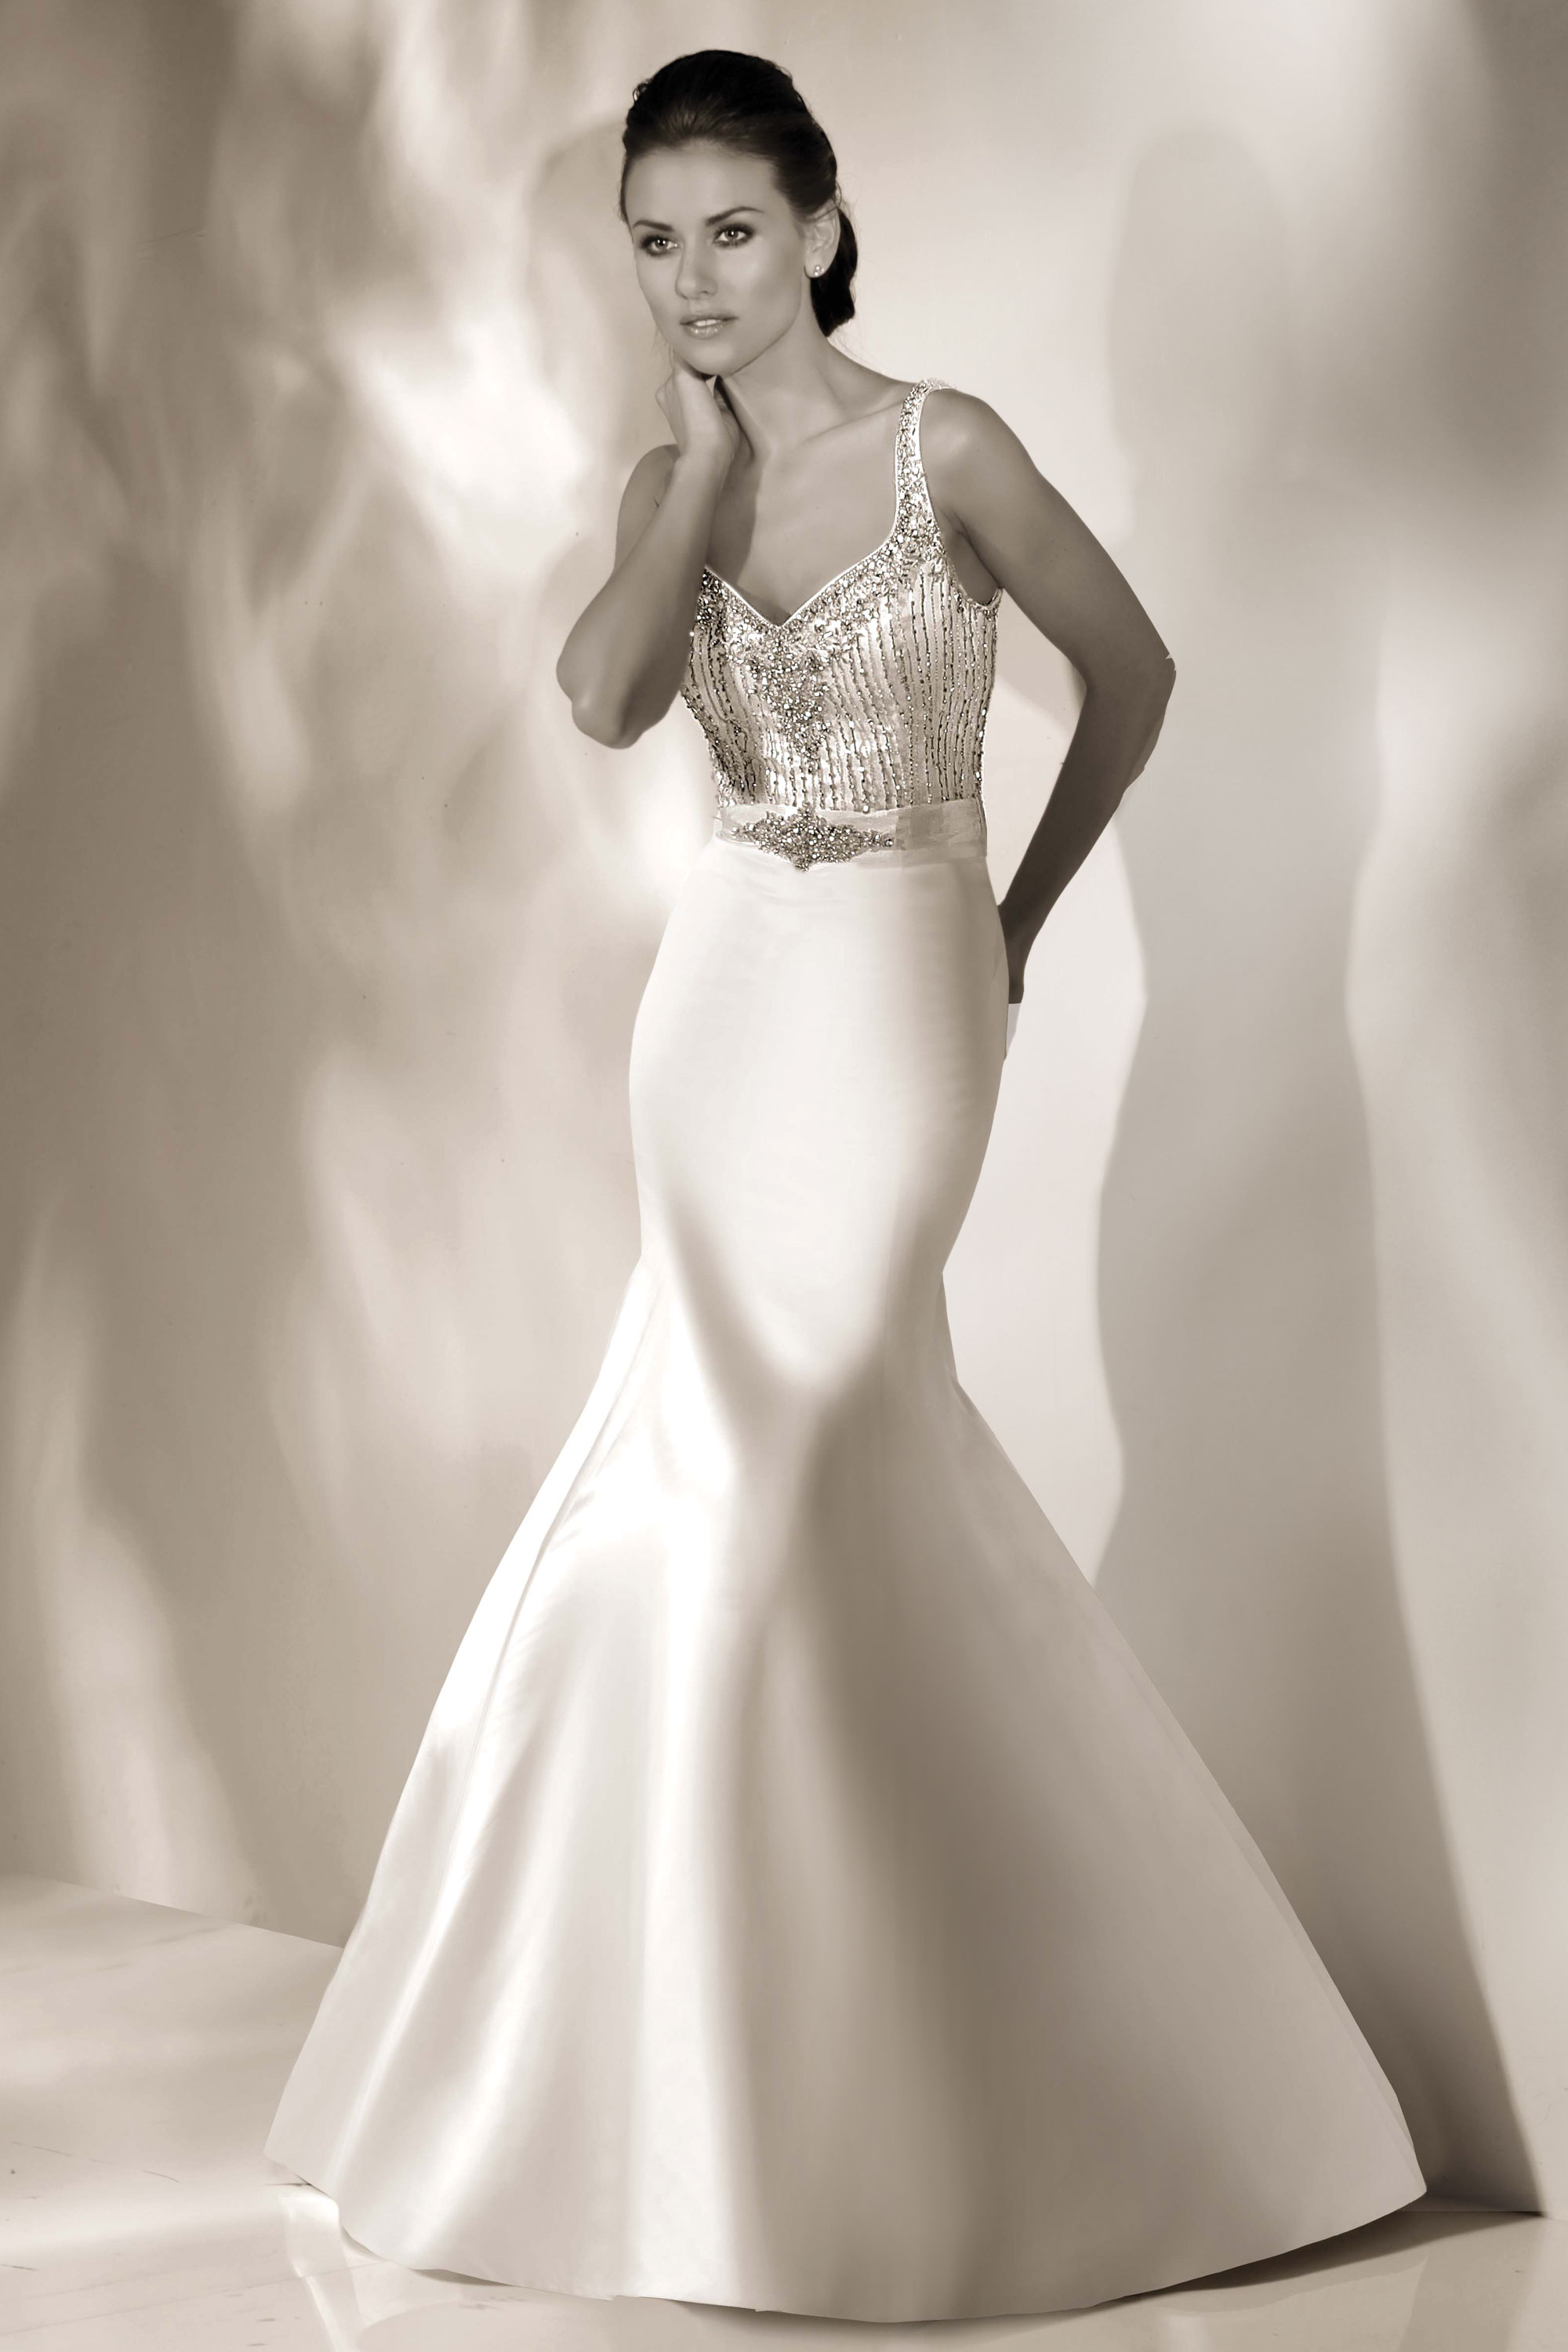 cristiano-lucci-wedding-dresses-23-01052014